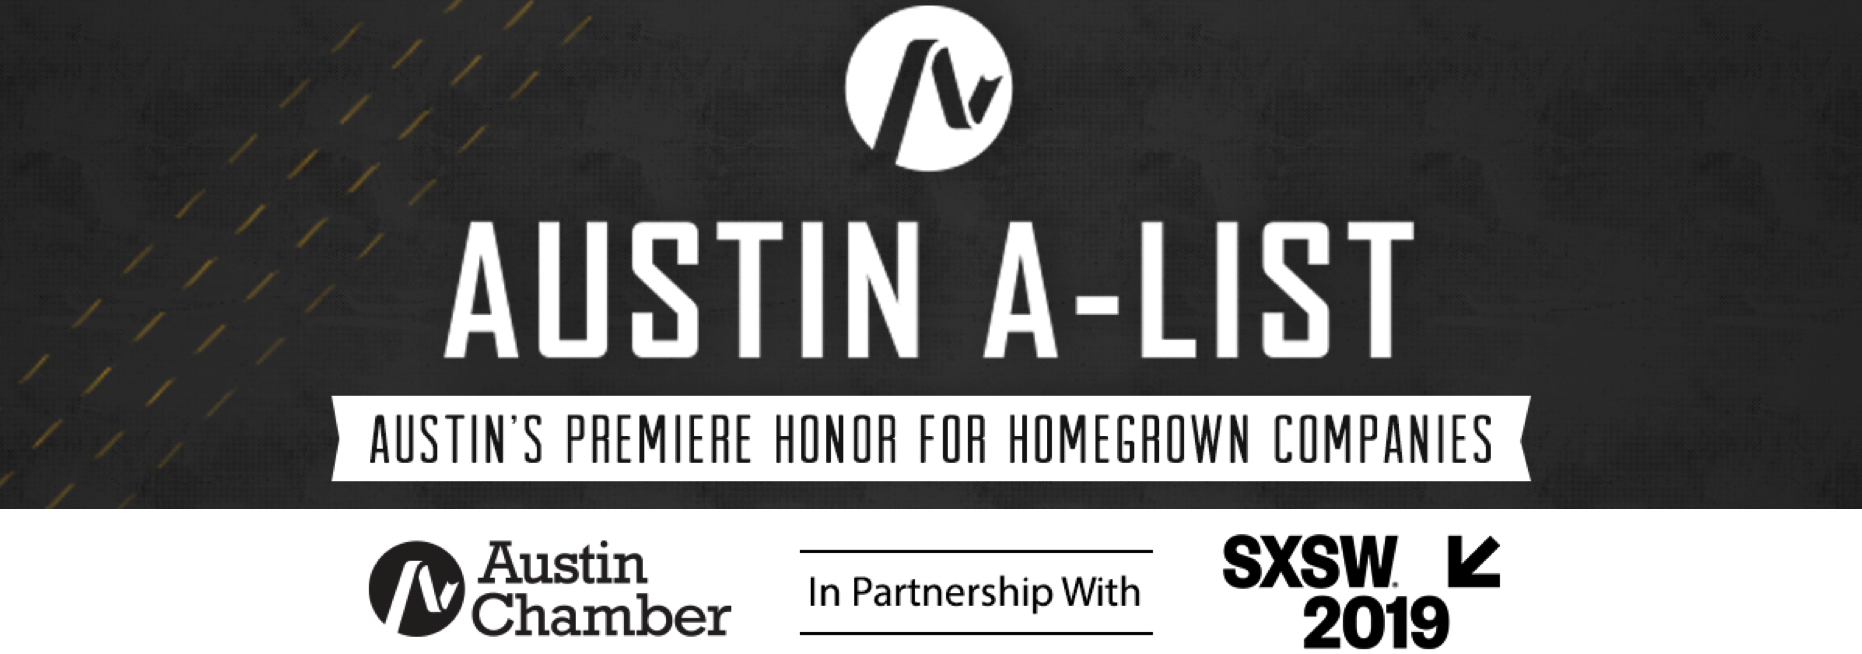 Austin A-List Nominees